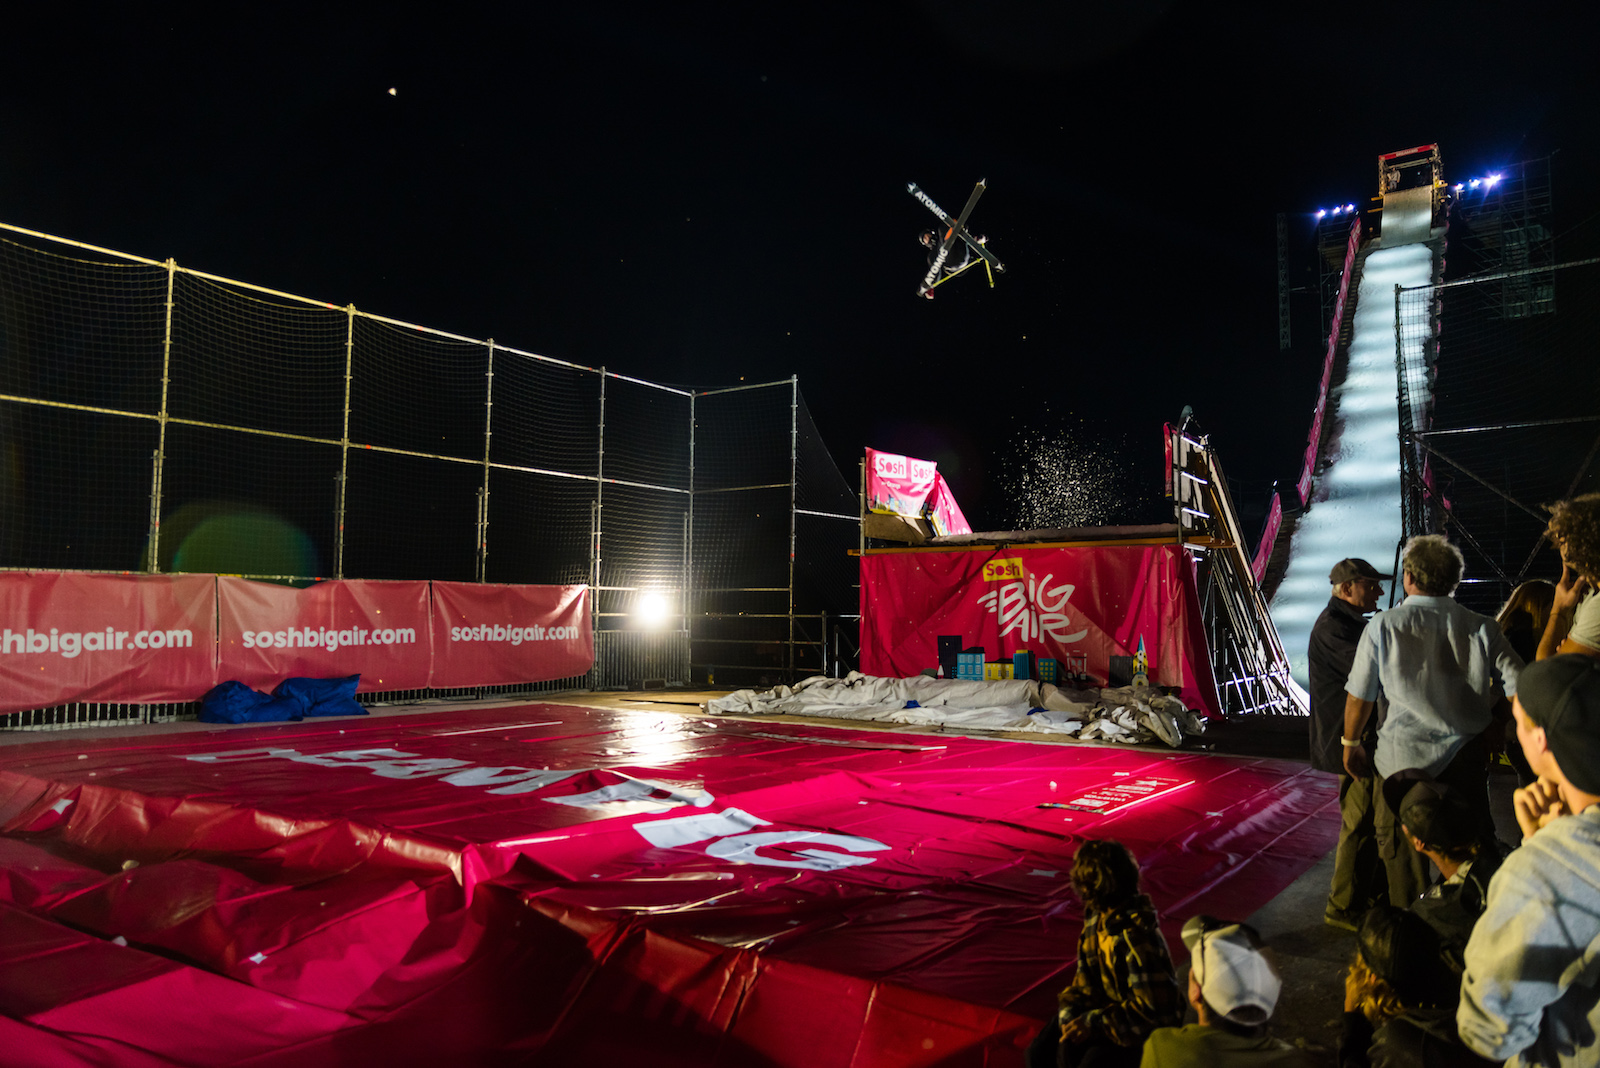 Qualifications Sosh Big Air / Copyright David Malacrida